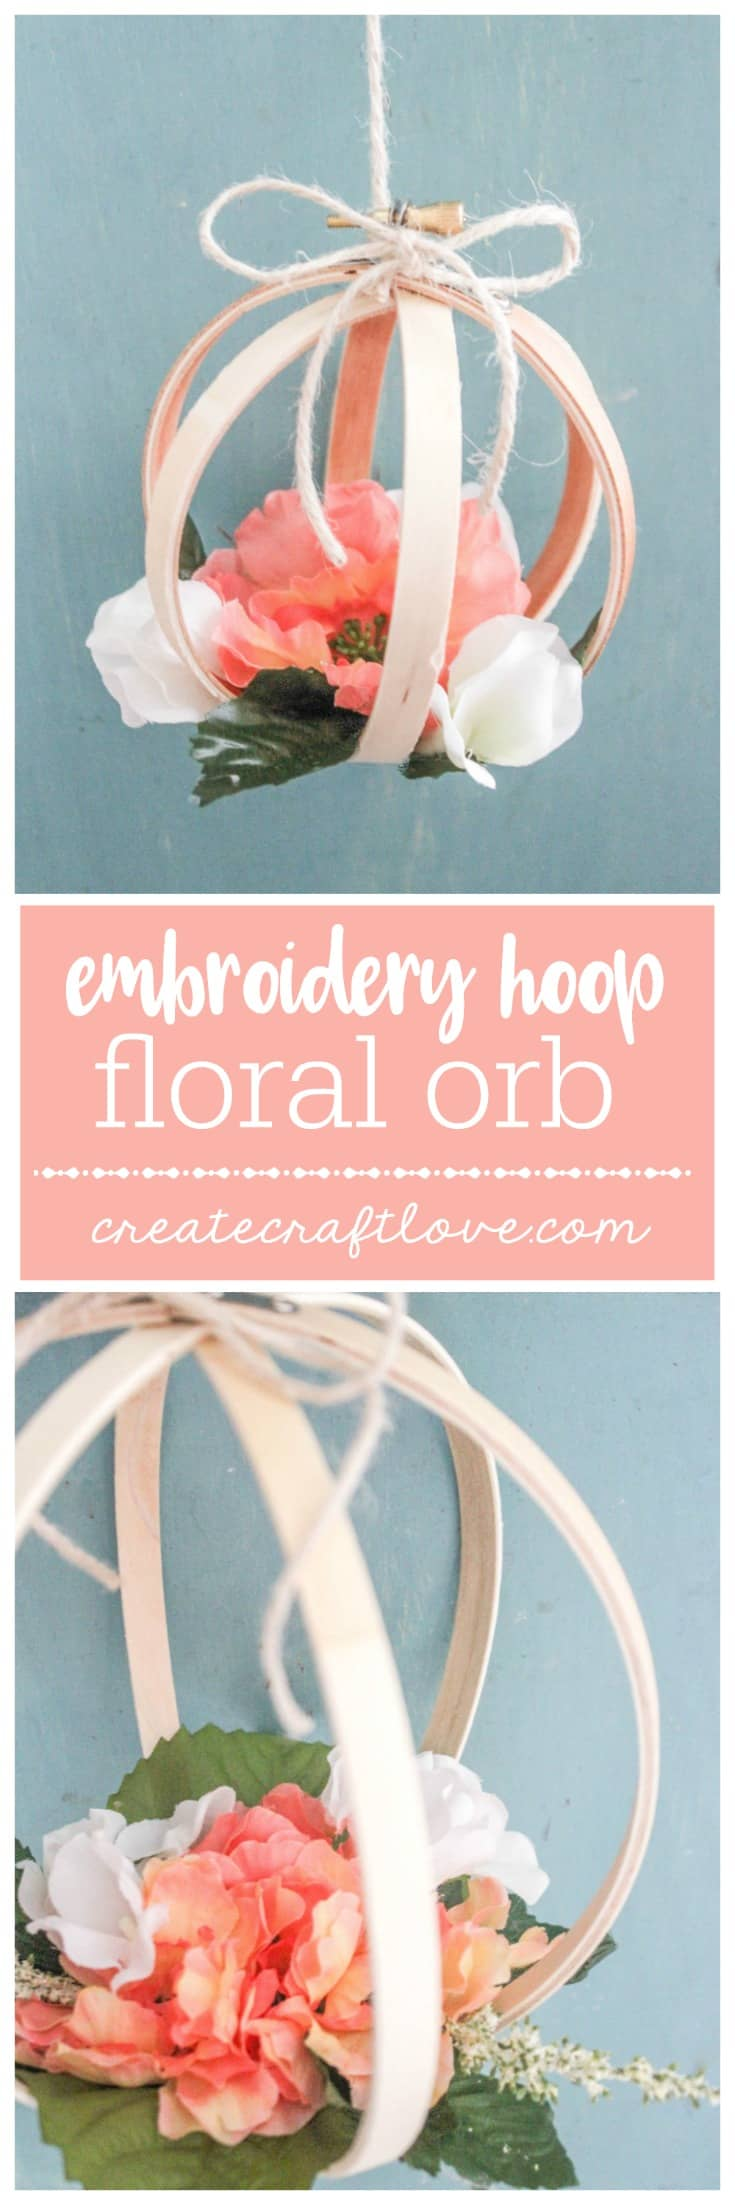 Create this stunning Embroidery Hoop Floral Orb to add to your spring decor!  Comes together in less than 10 minutes!